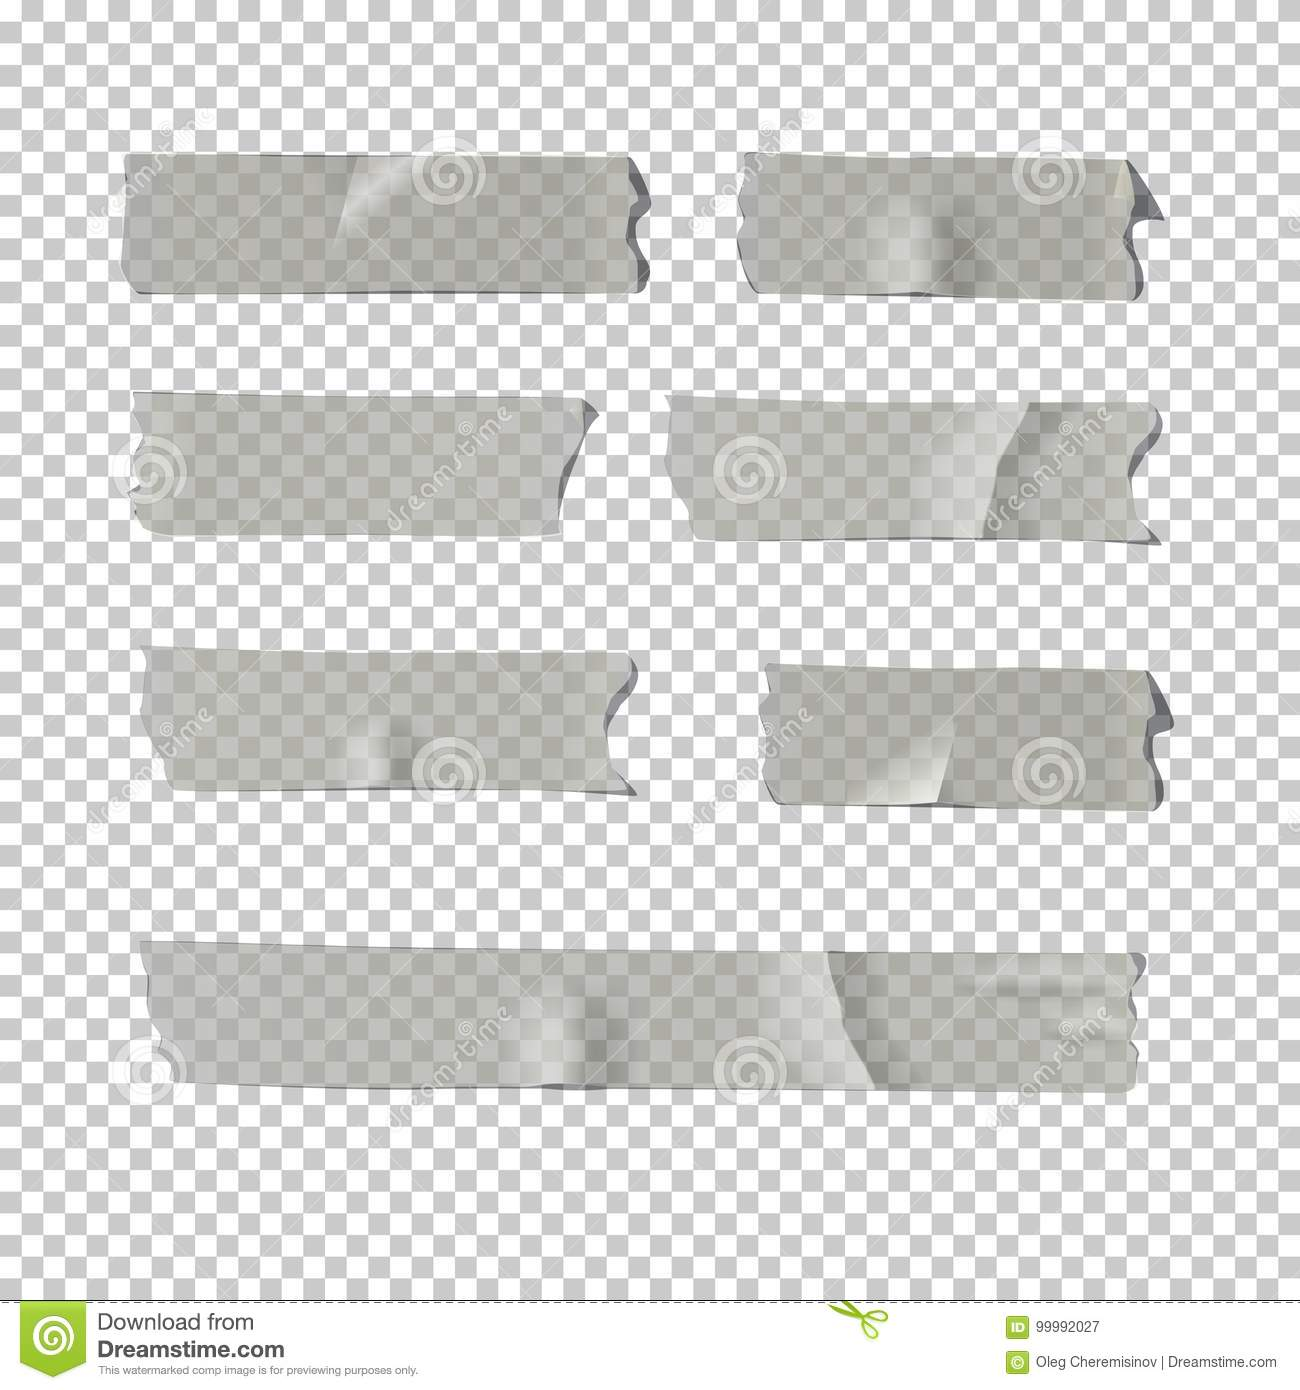 Adhesive Tape Set On Transparent Background Vector